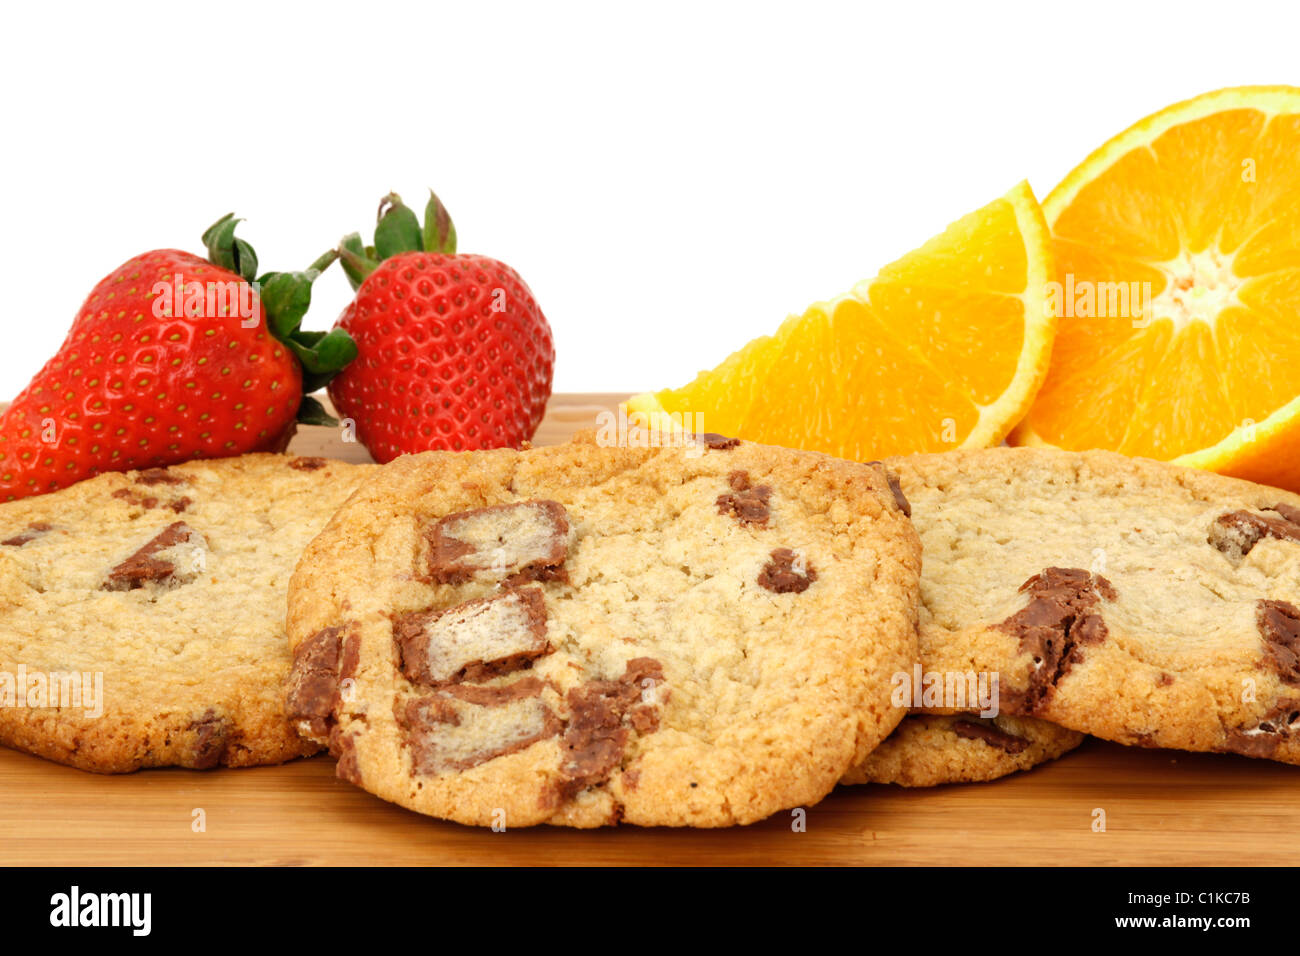 Chocolate chip cookies arranged on a wooden board and decorated with strawberries and oranges. White background - Stock Image